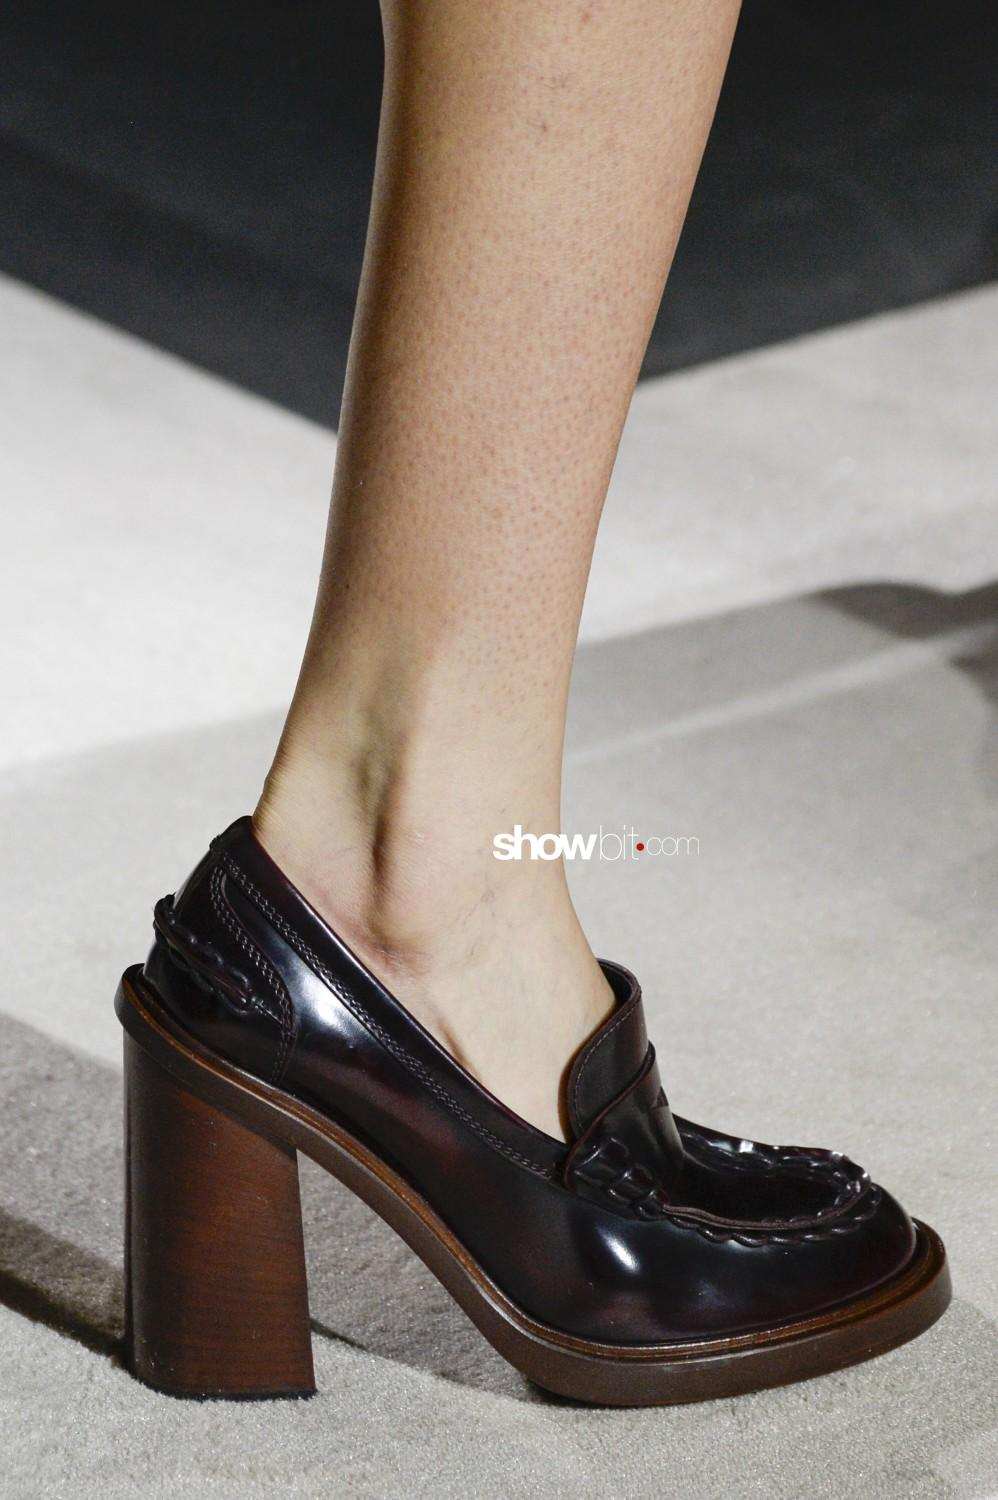 Tods close-up Women Fall Winter 2020 Milano shoes